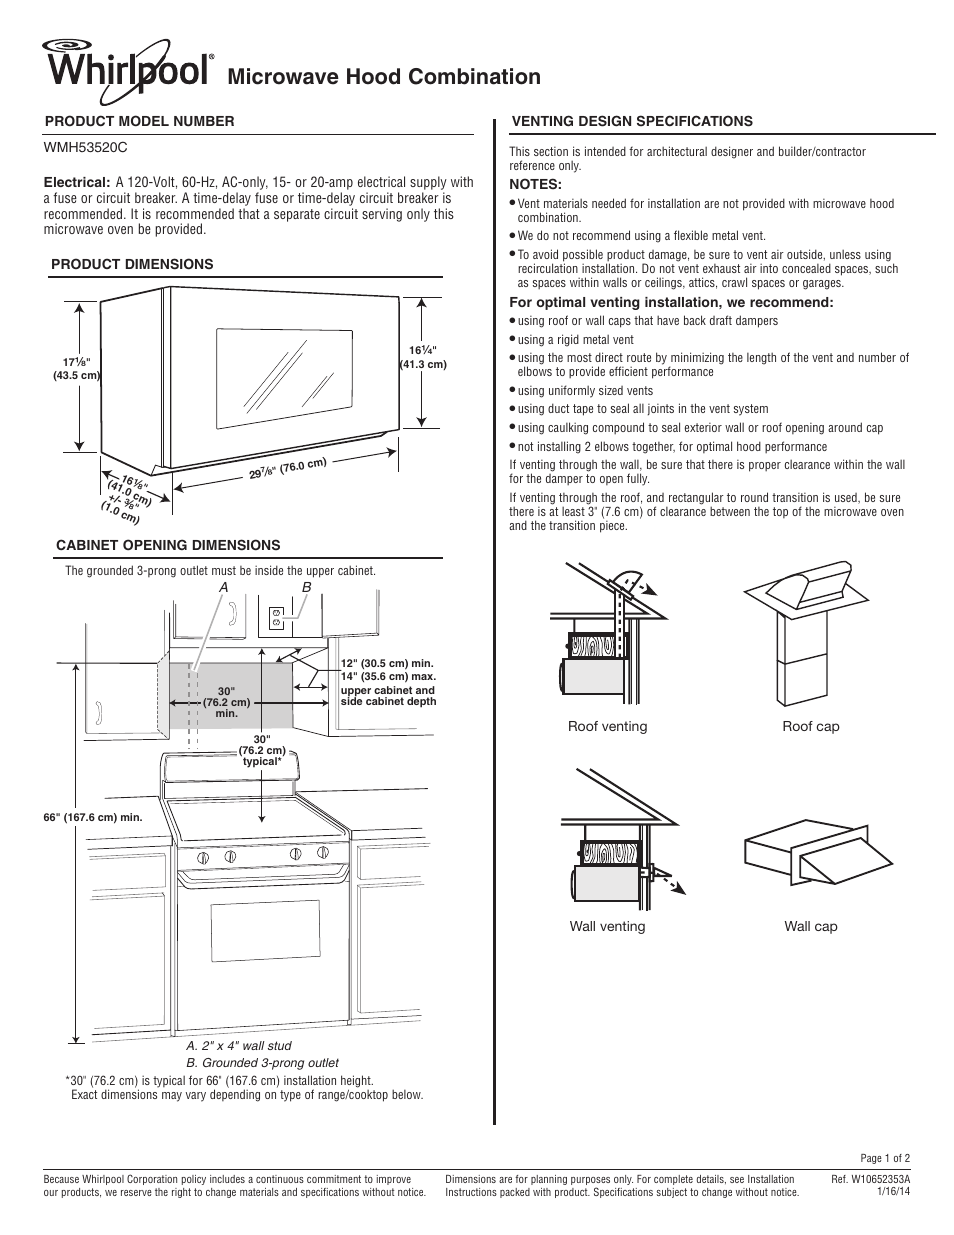 Whirlpool Microwave Schematics Change Your Idea With Wiring Dishwasher Schematic Wmh53520cs User Manual 2 Pages Electrical Wmh31017as